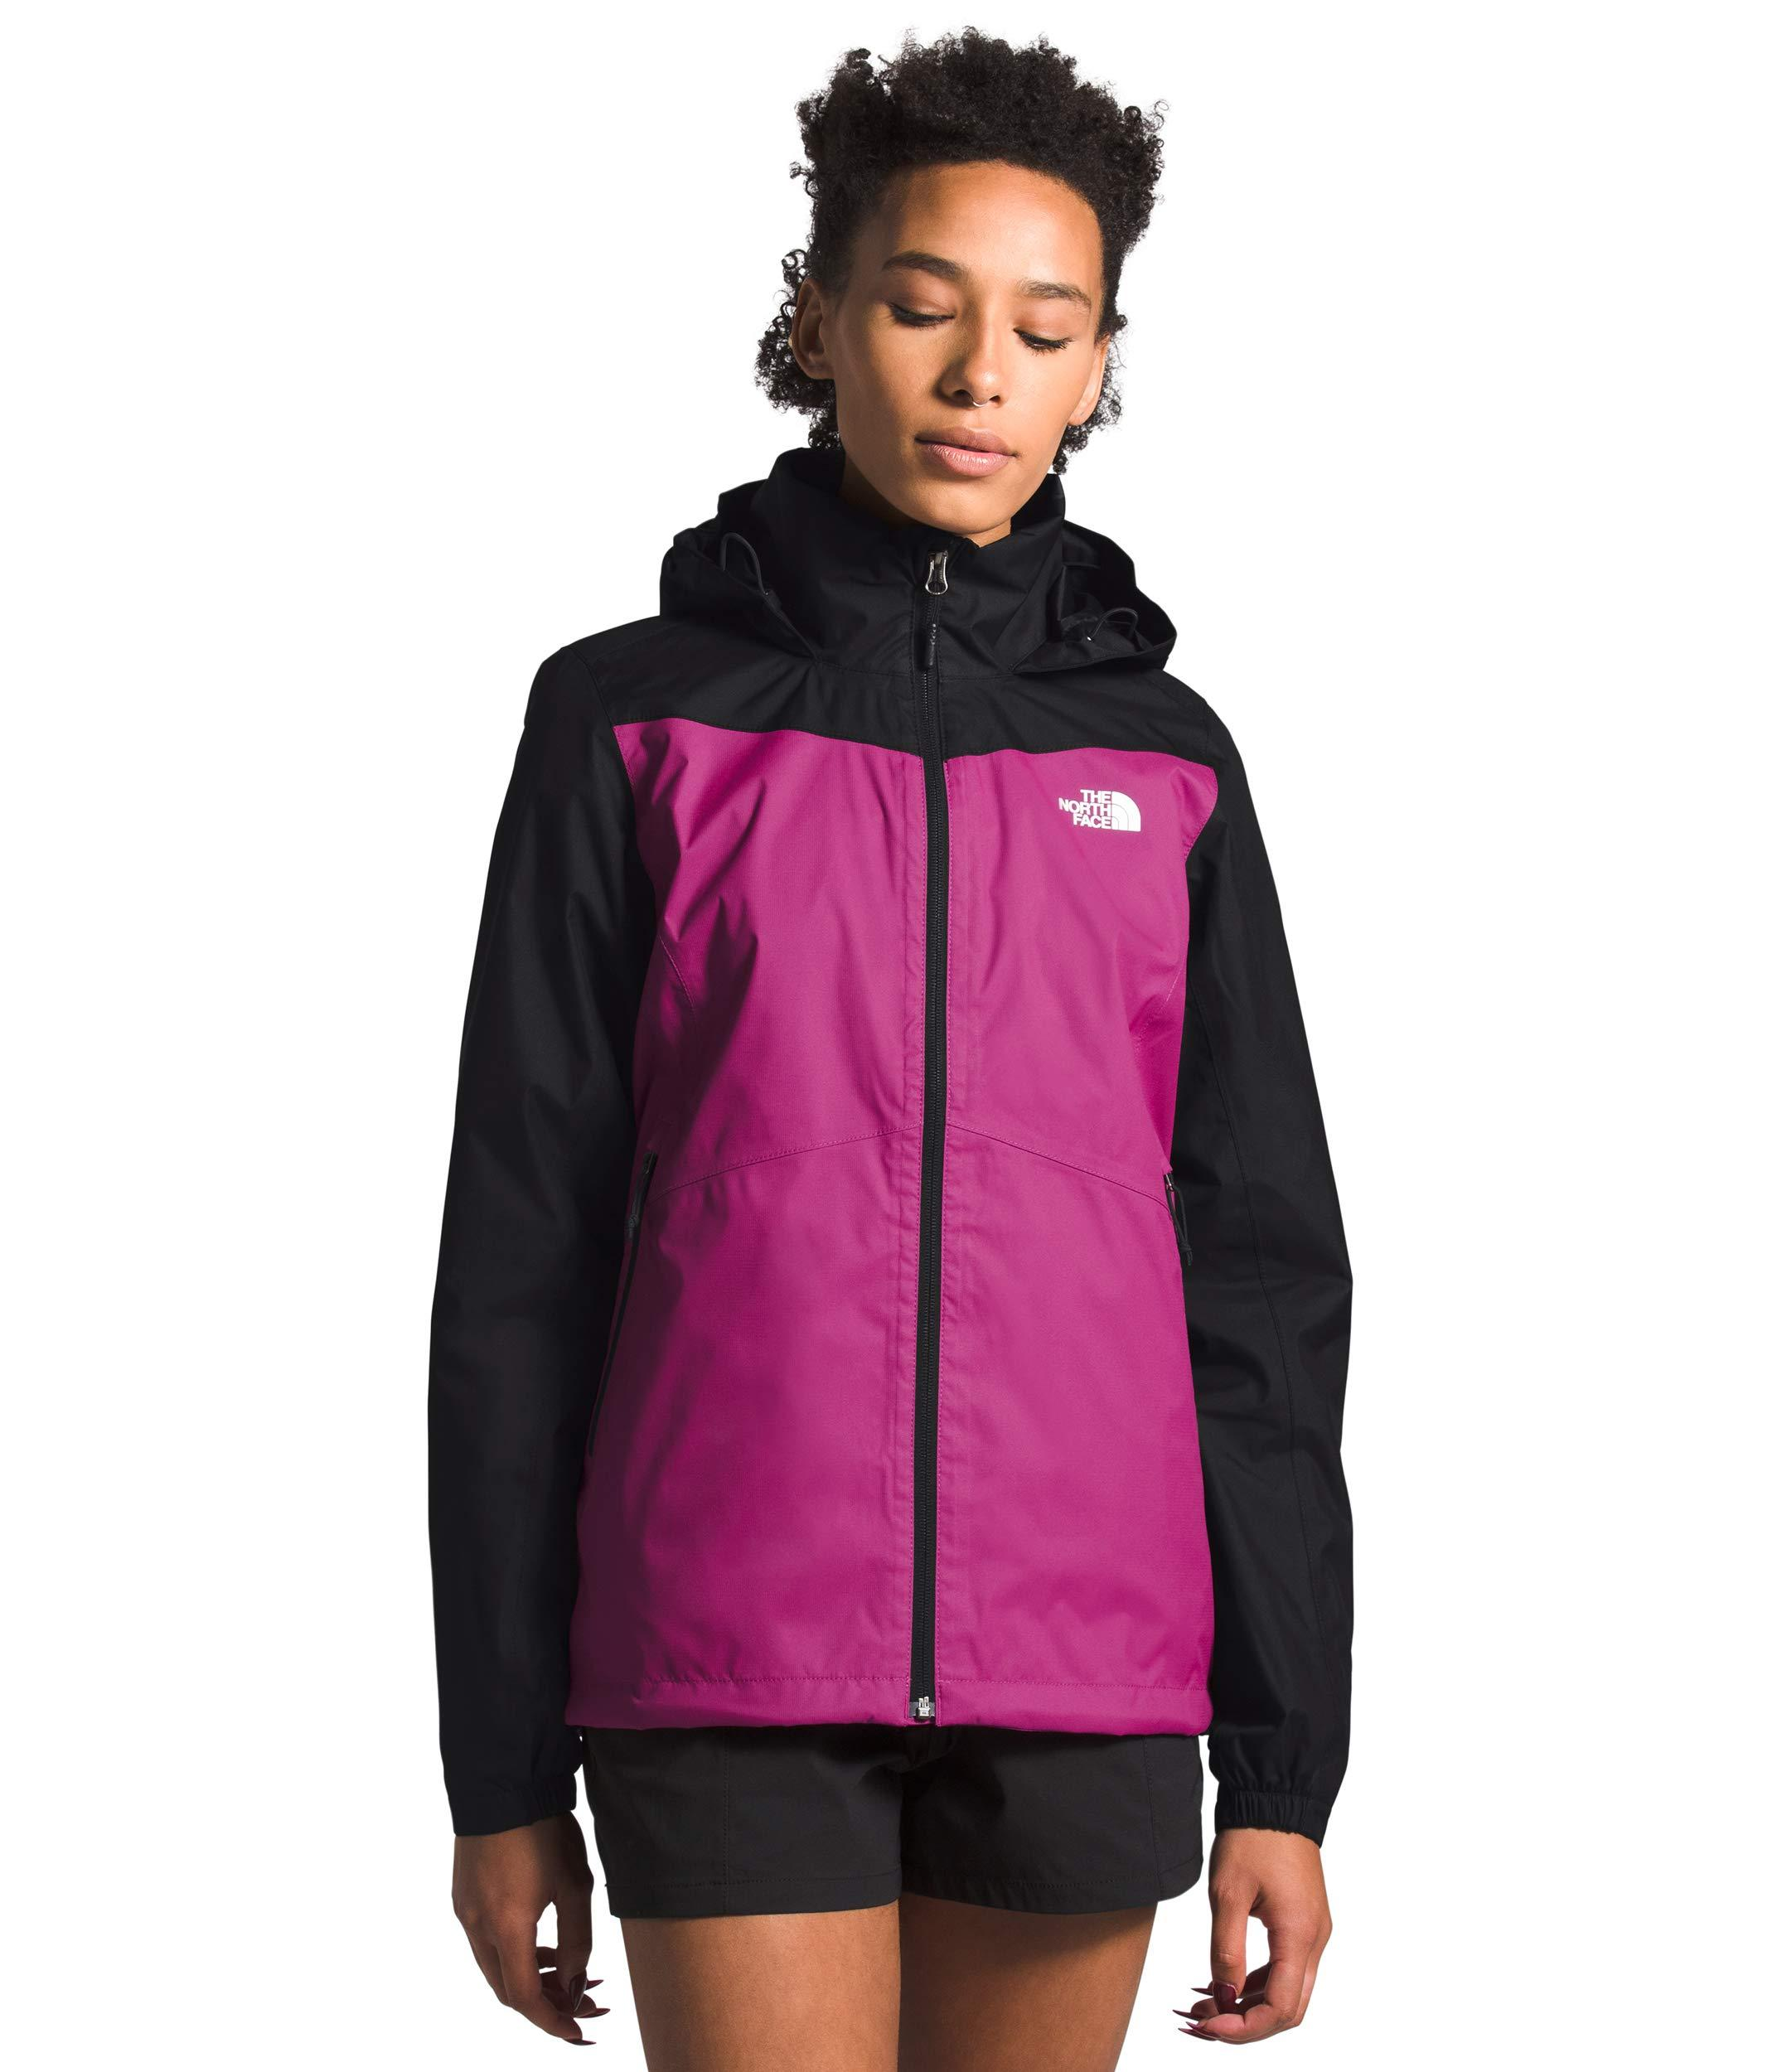 Women's The North Face Resolve Plus Jacket  in Wild Aster Purple/TNF Black